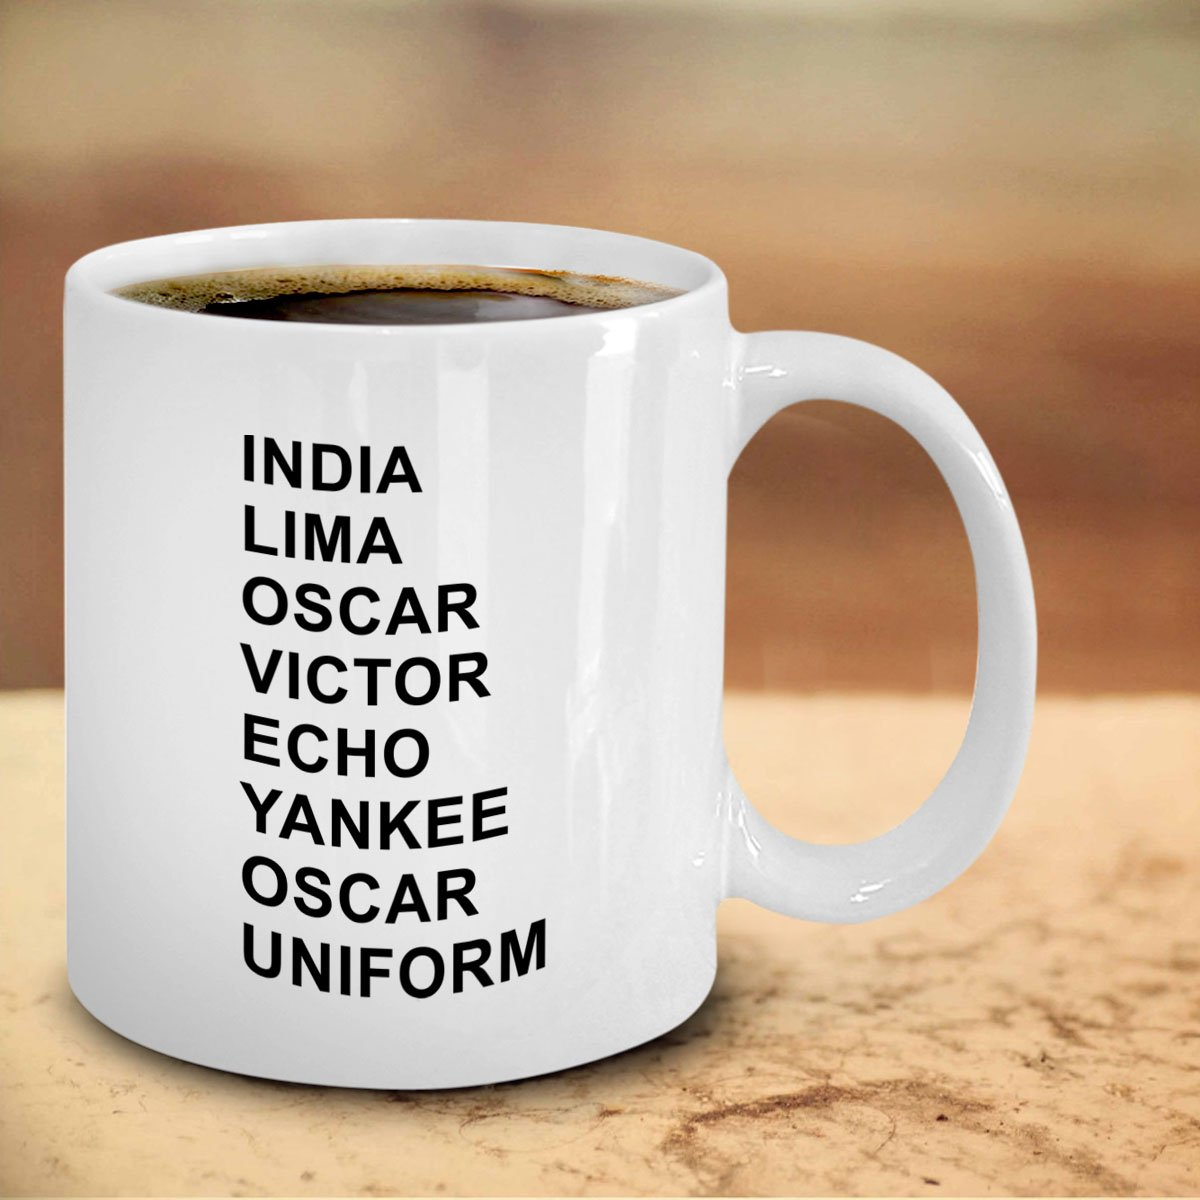 Phonetic Alphabet Mug Amateur Ham Radio Operator Gifts Aviation Code India Lima Oscar Victor Echo Yankee Uniform Buy Online In Bulgaria At Bulgaria Desertcart Com Productid 56404529